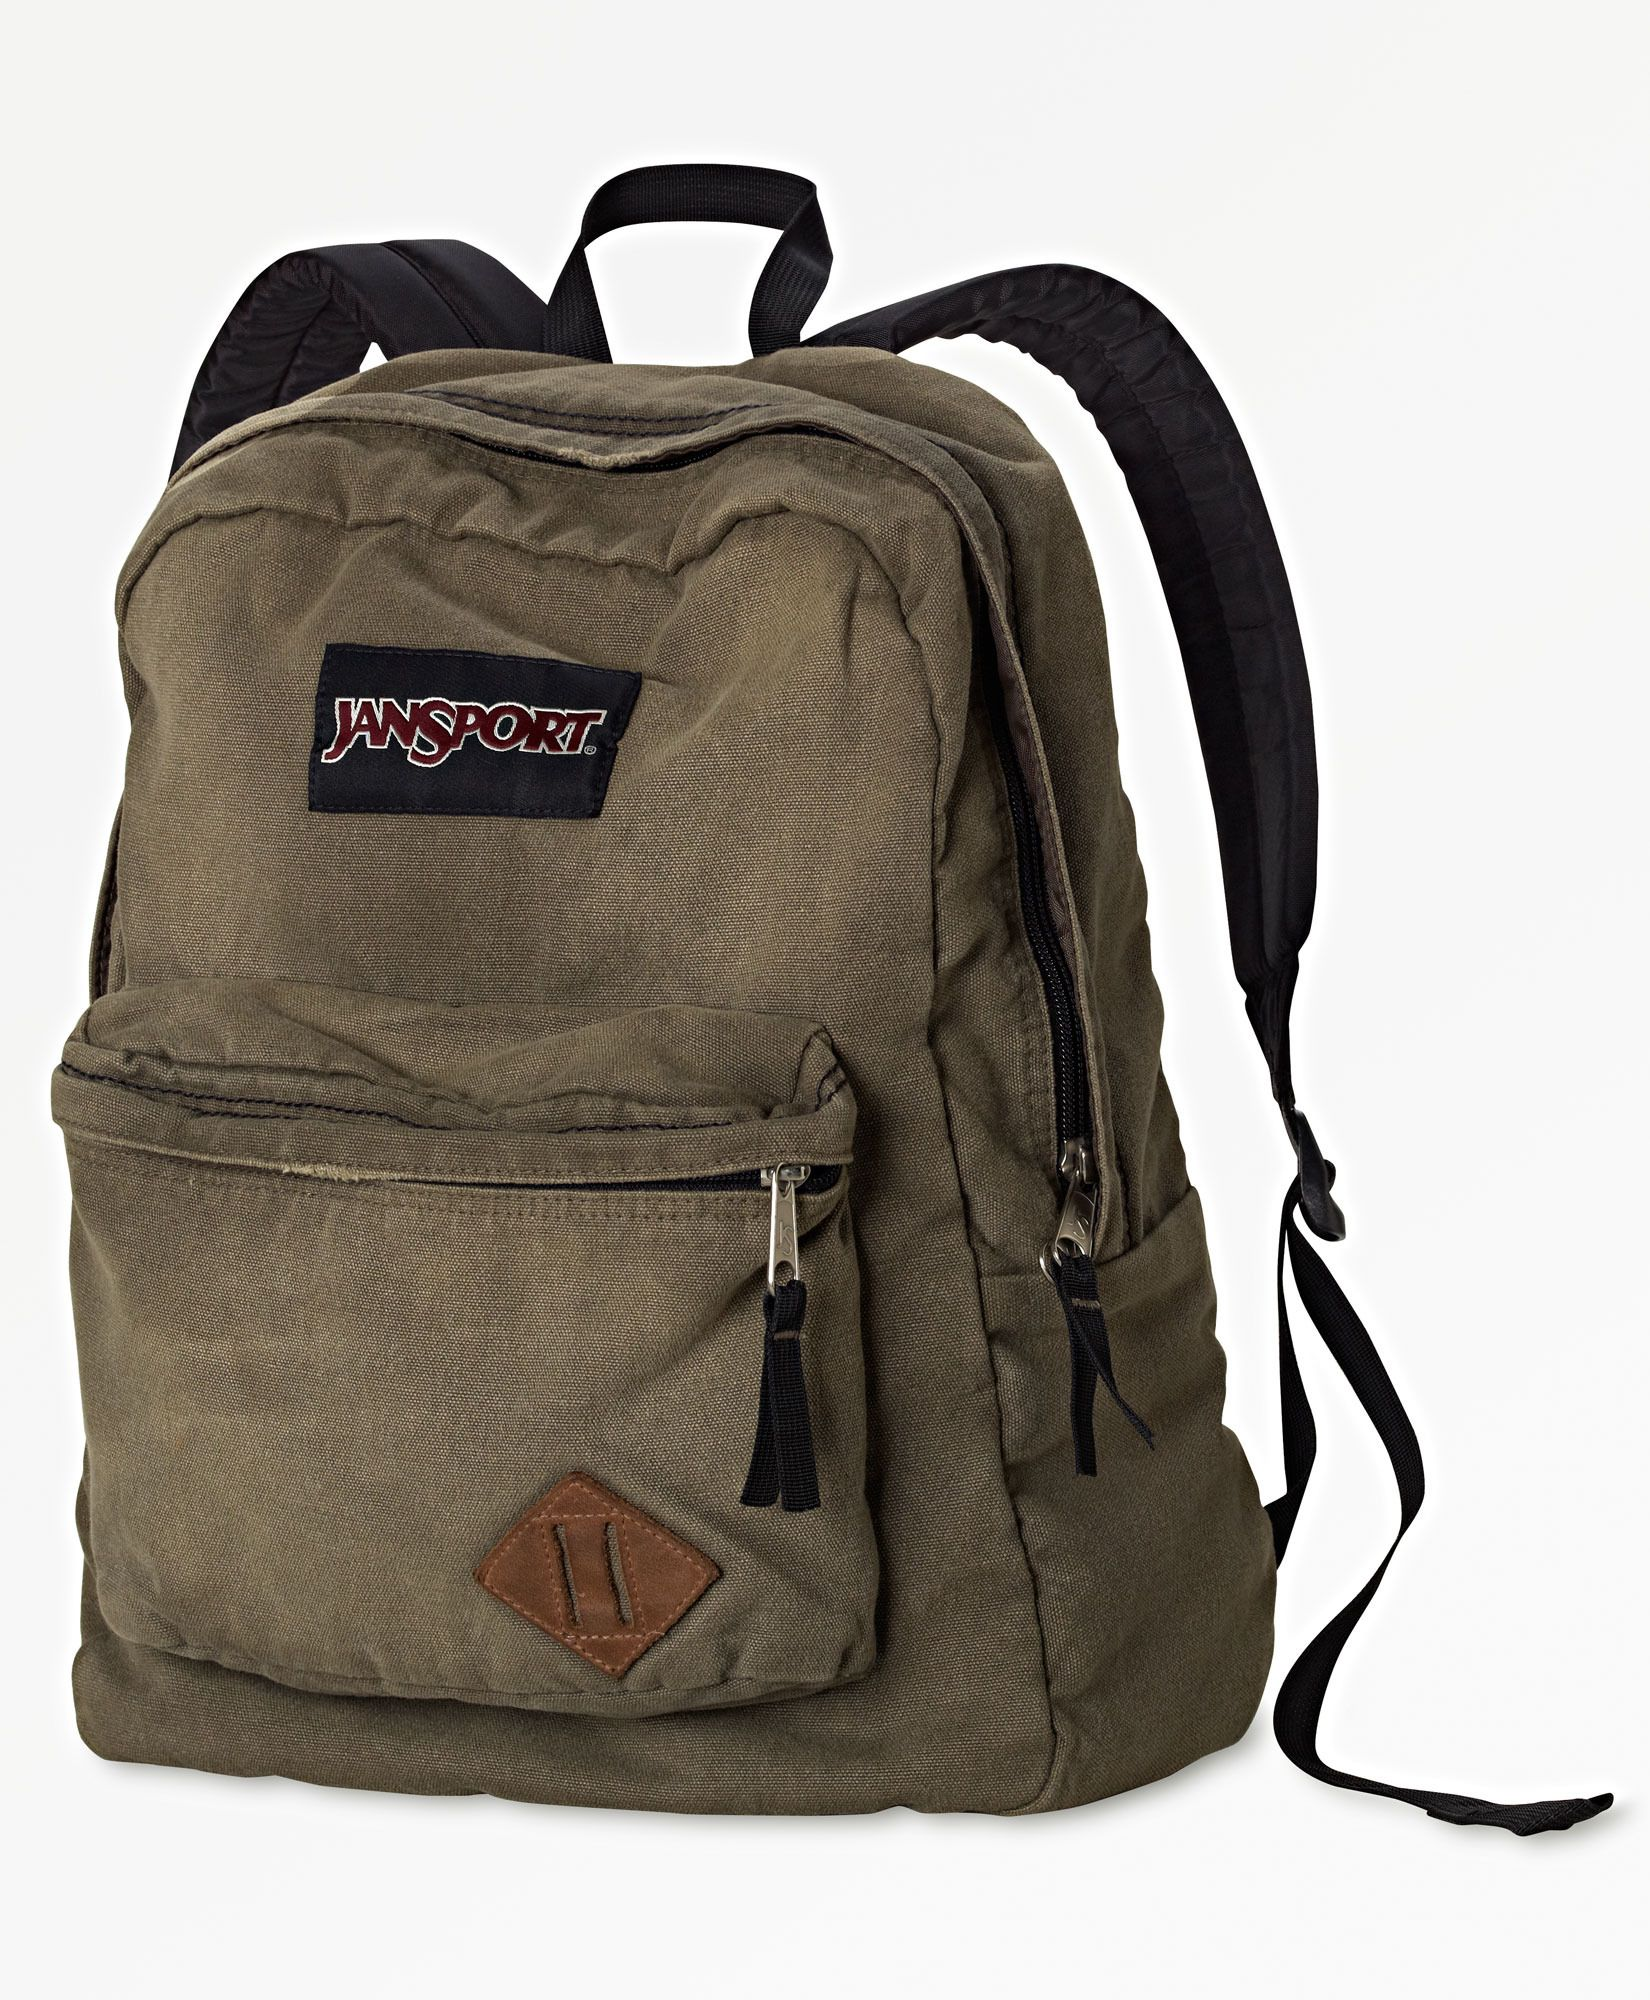 Jansport cool brown grunge Backpack  eb629edc726a7